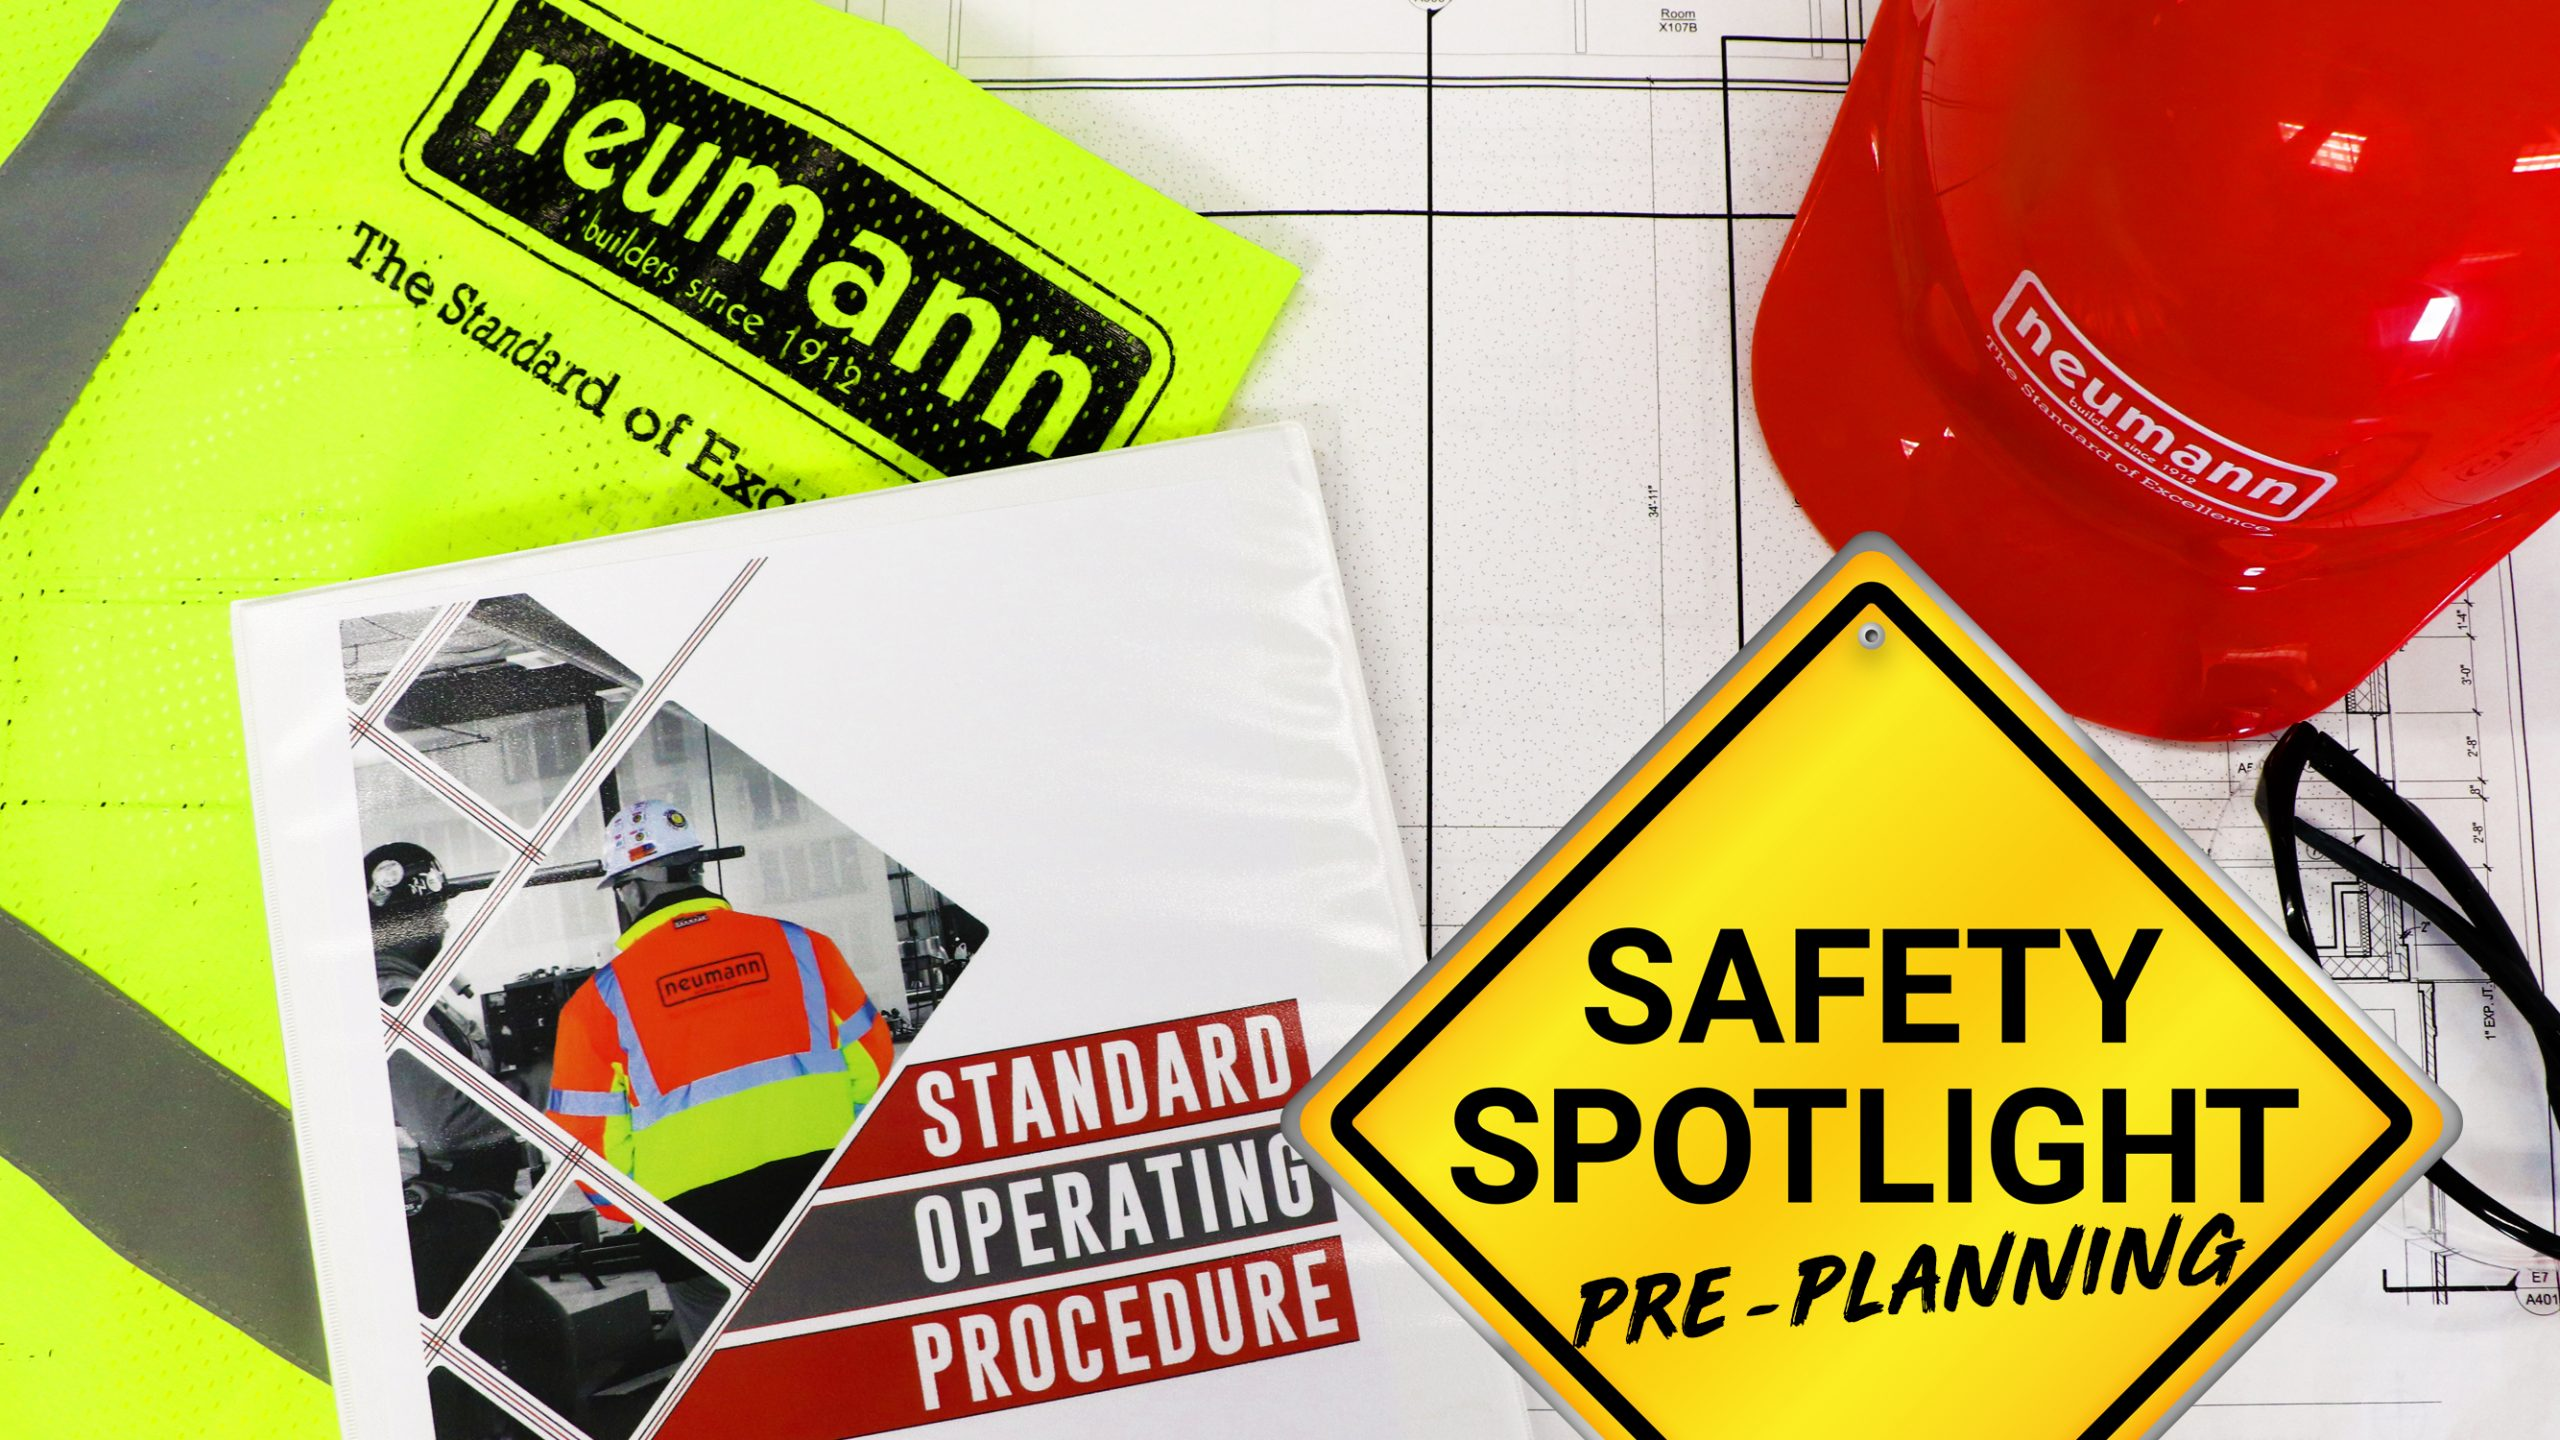 Safety Spotlight: Pre-Planning for Safety